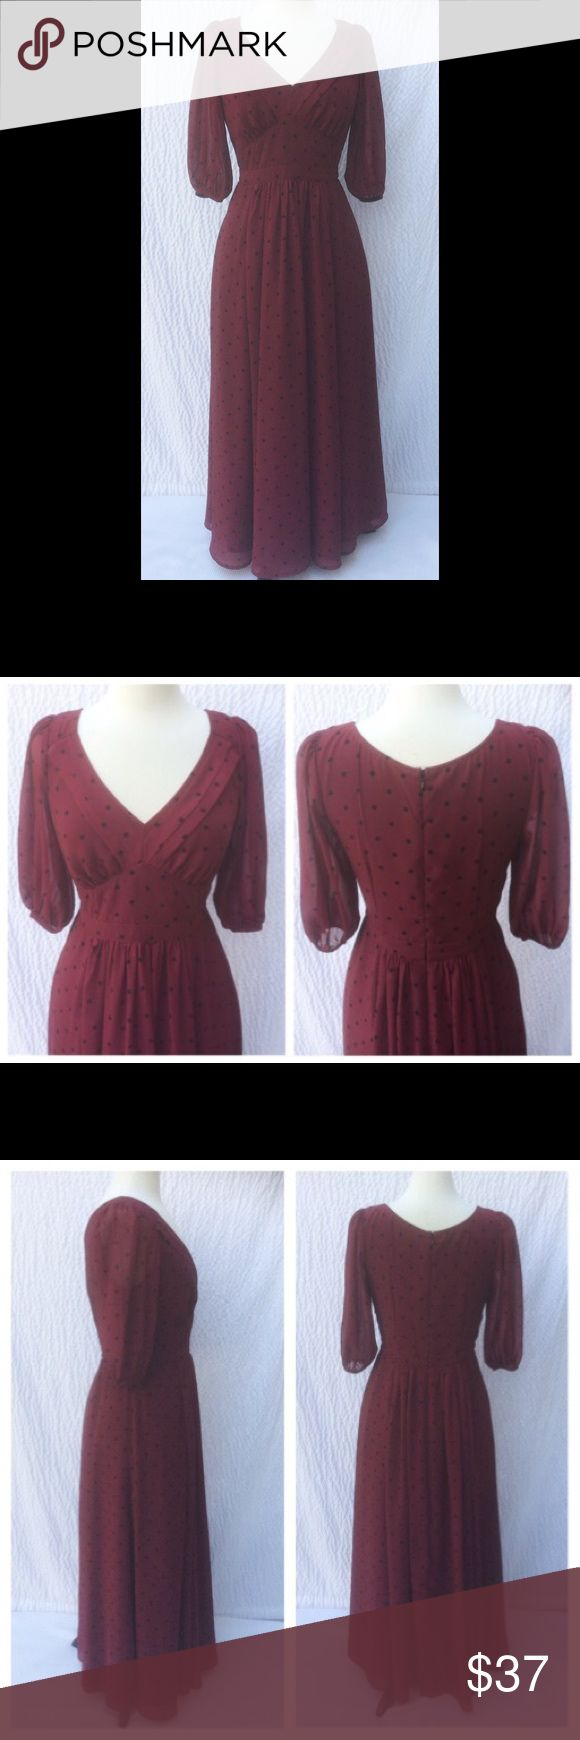 """New Eshakti Polka Dot Fit & Flare Midi Dress M 10 New Eshakti burgundy/red polka dot georgette maxi dress M 10 Measured flat: Underarm to underarm:35"""" Waist:30"""" Length:53"""" Sleeve:15"""" Eshakti chart for 10 bust:37"""" Pleated  v neck, inverted bust pleats. Banded waist w/ high empire point, side seam pockets. Side hidden zipper. Center ruched pleated flared maxi skirt. Lined in poly moss crepe. Polyester, woven chiffon georgette, semi-sheer, no stretch, machine wash New w/cut out Eshakti tag to…"""